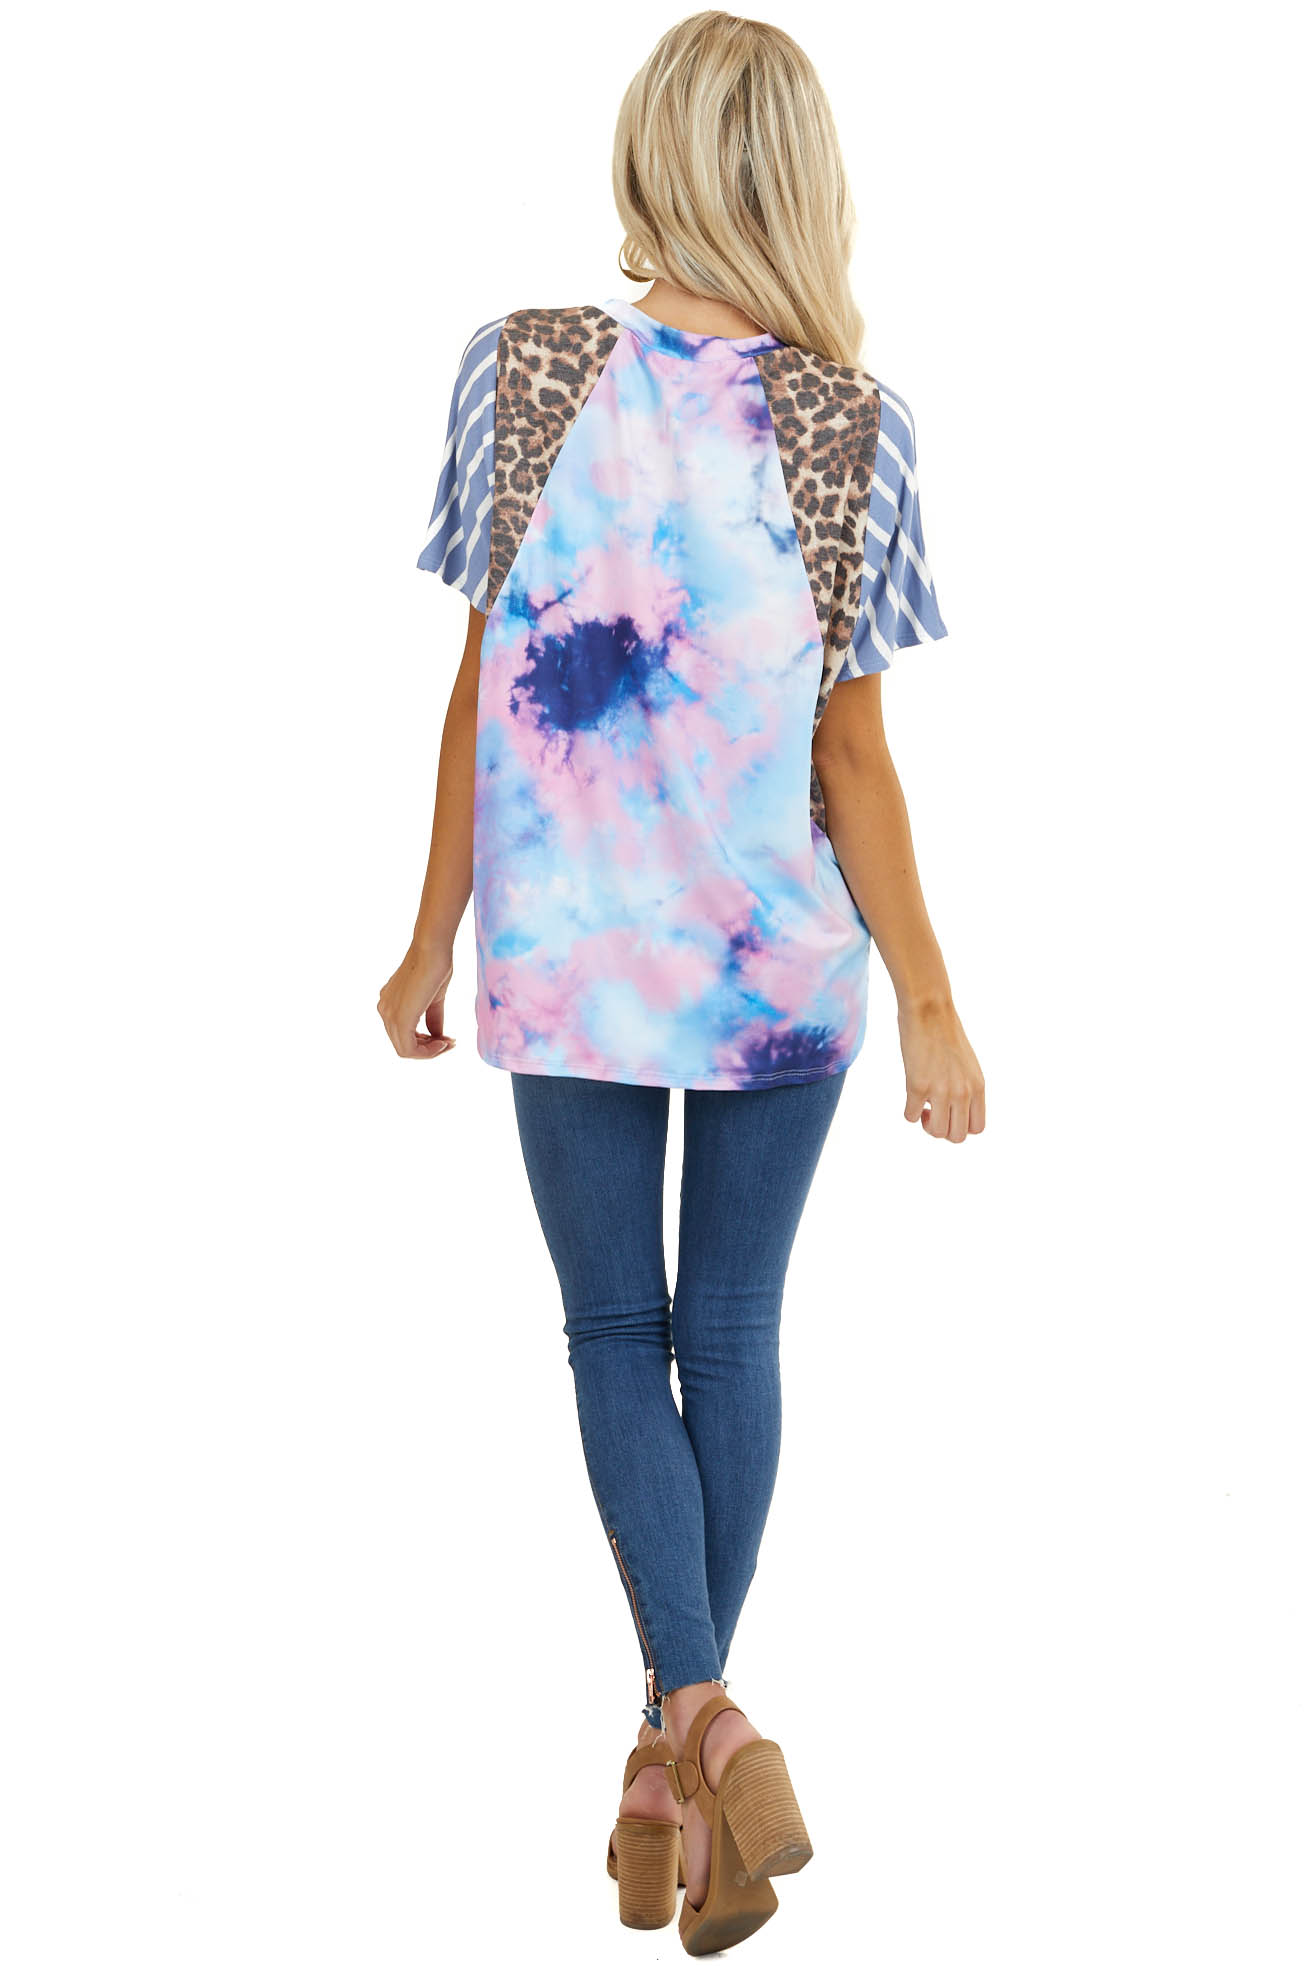 Multicolor Tie Dye Top with Leopard Print and Stripe Details